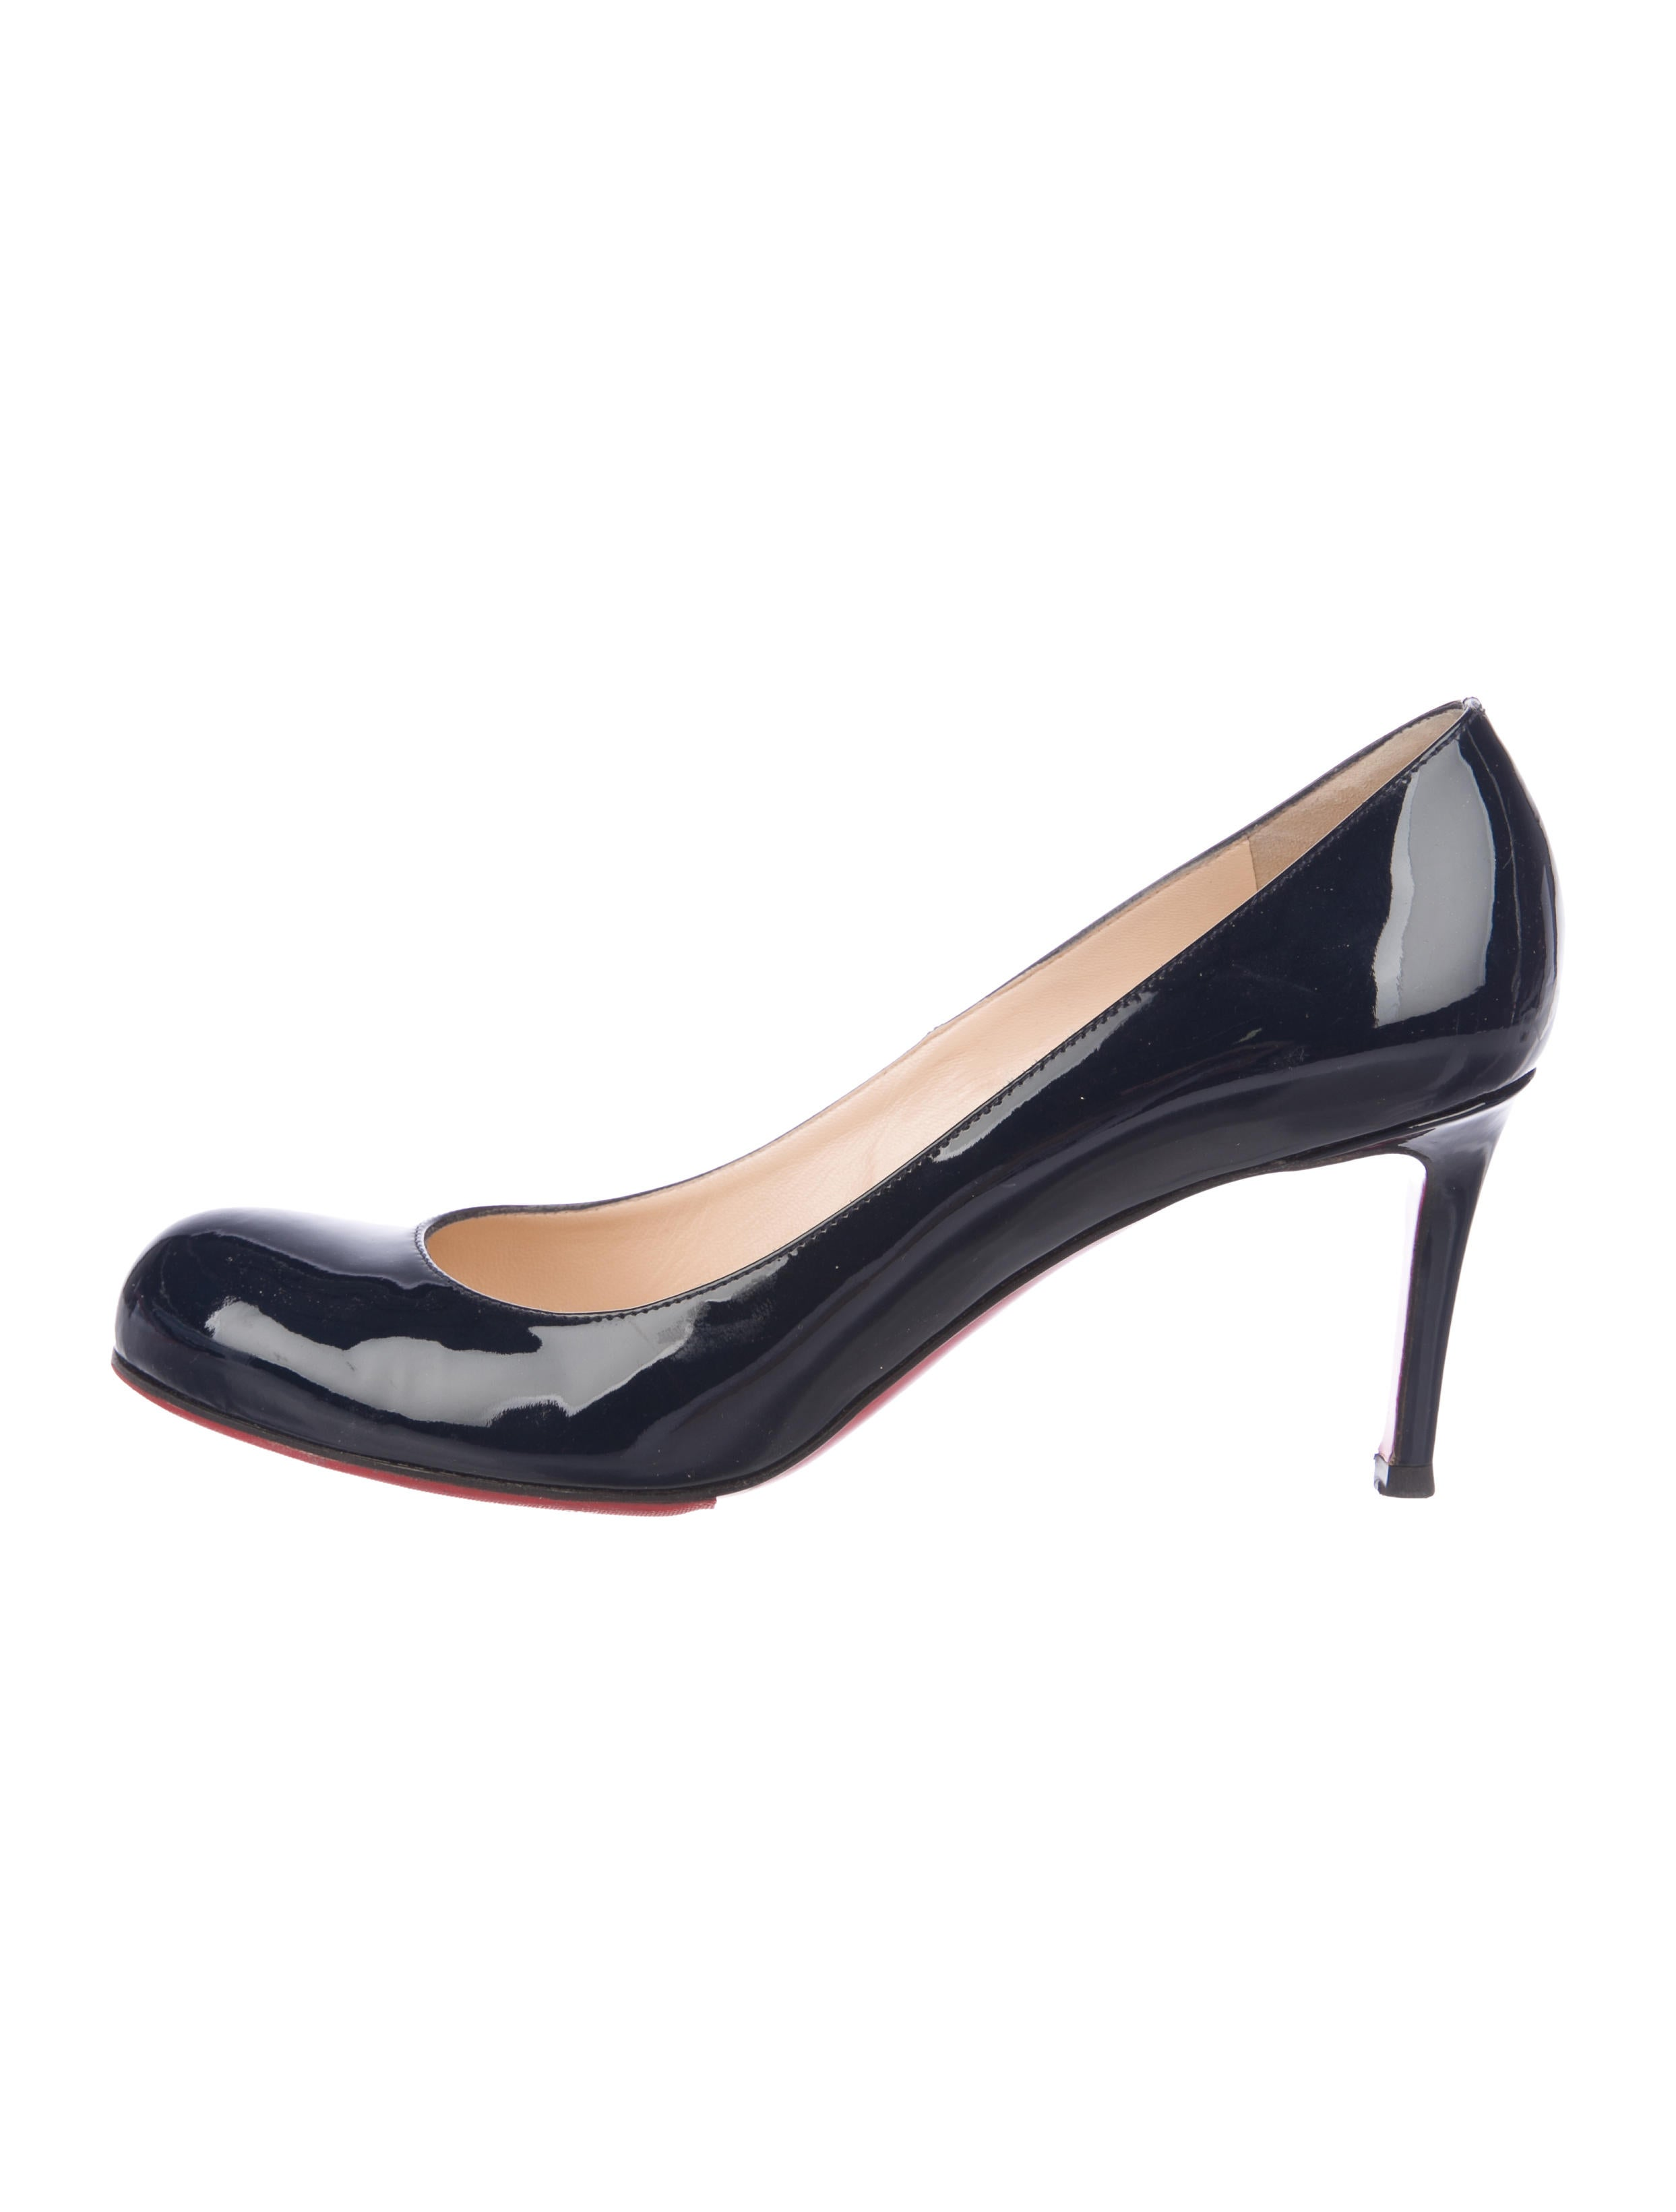 79e9a16438ff Christian Louboutin Shoes